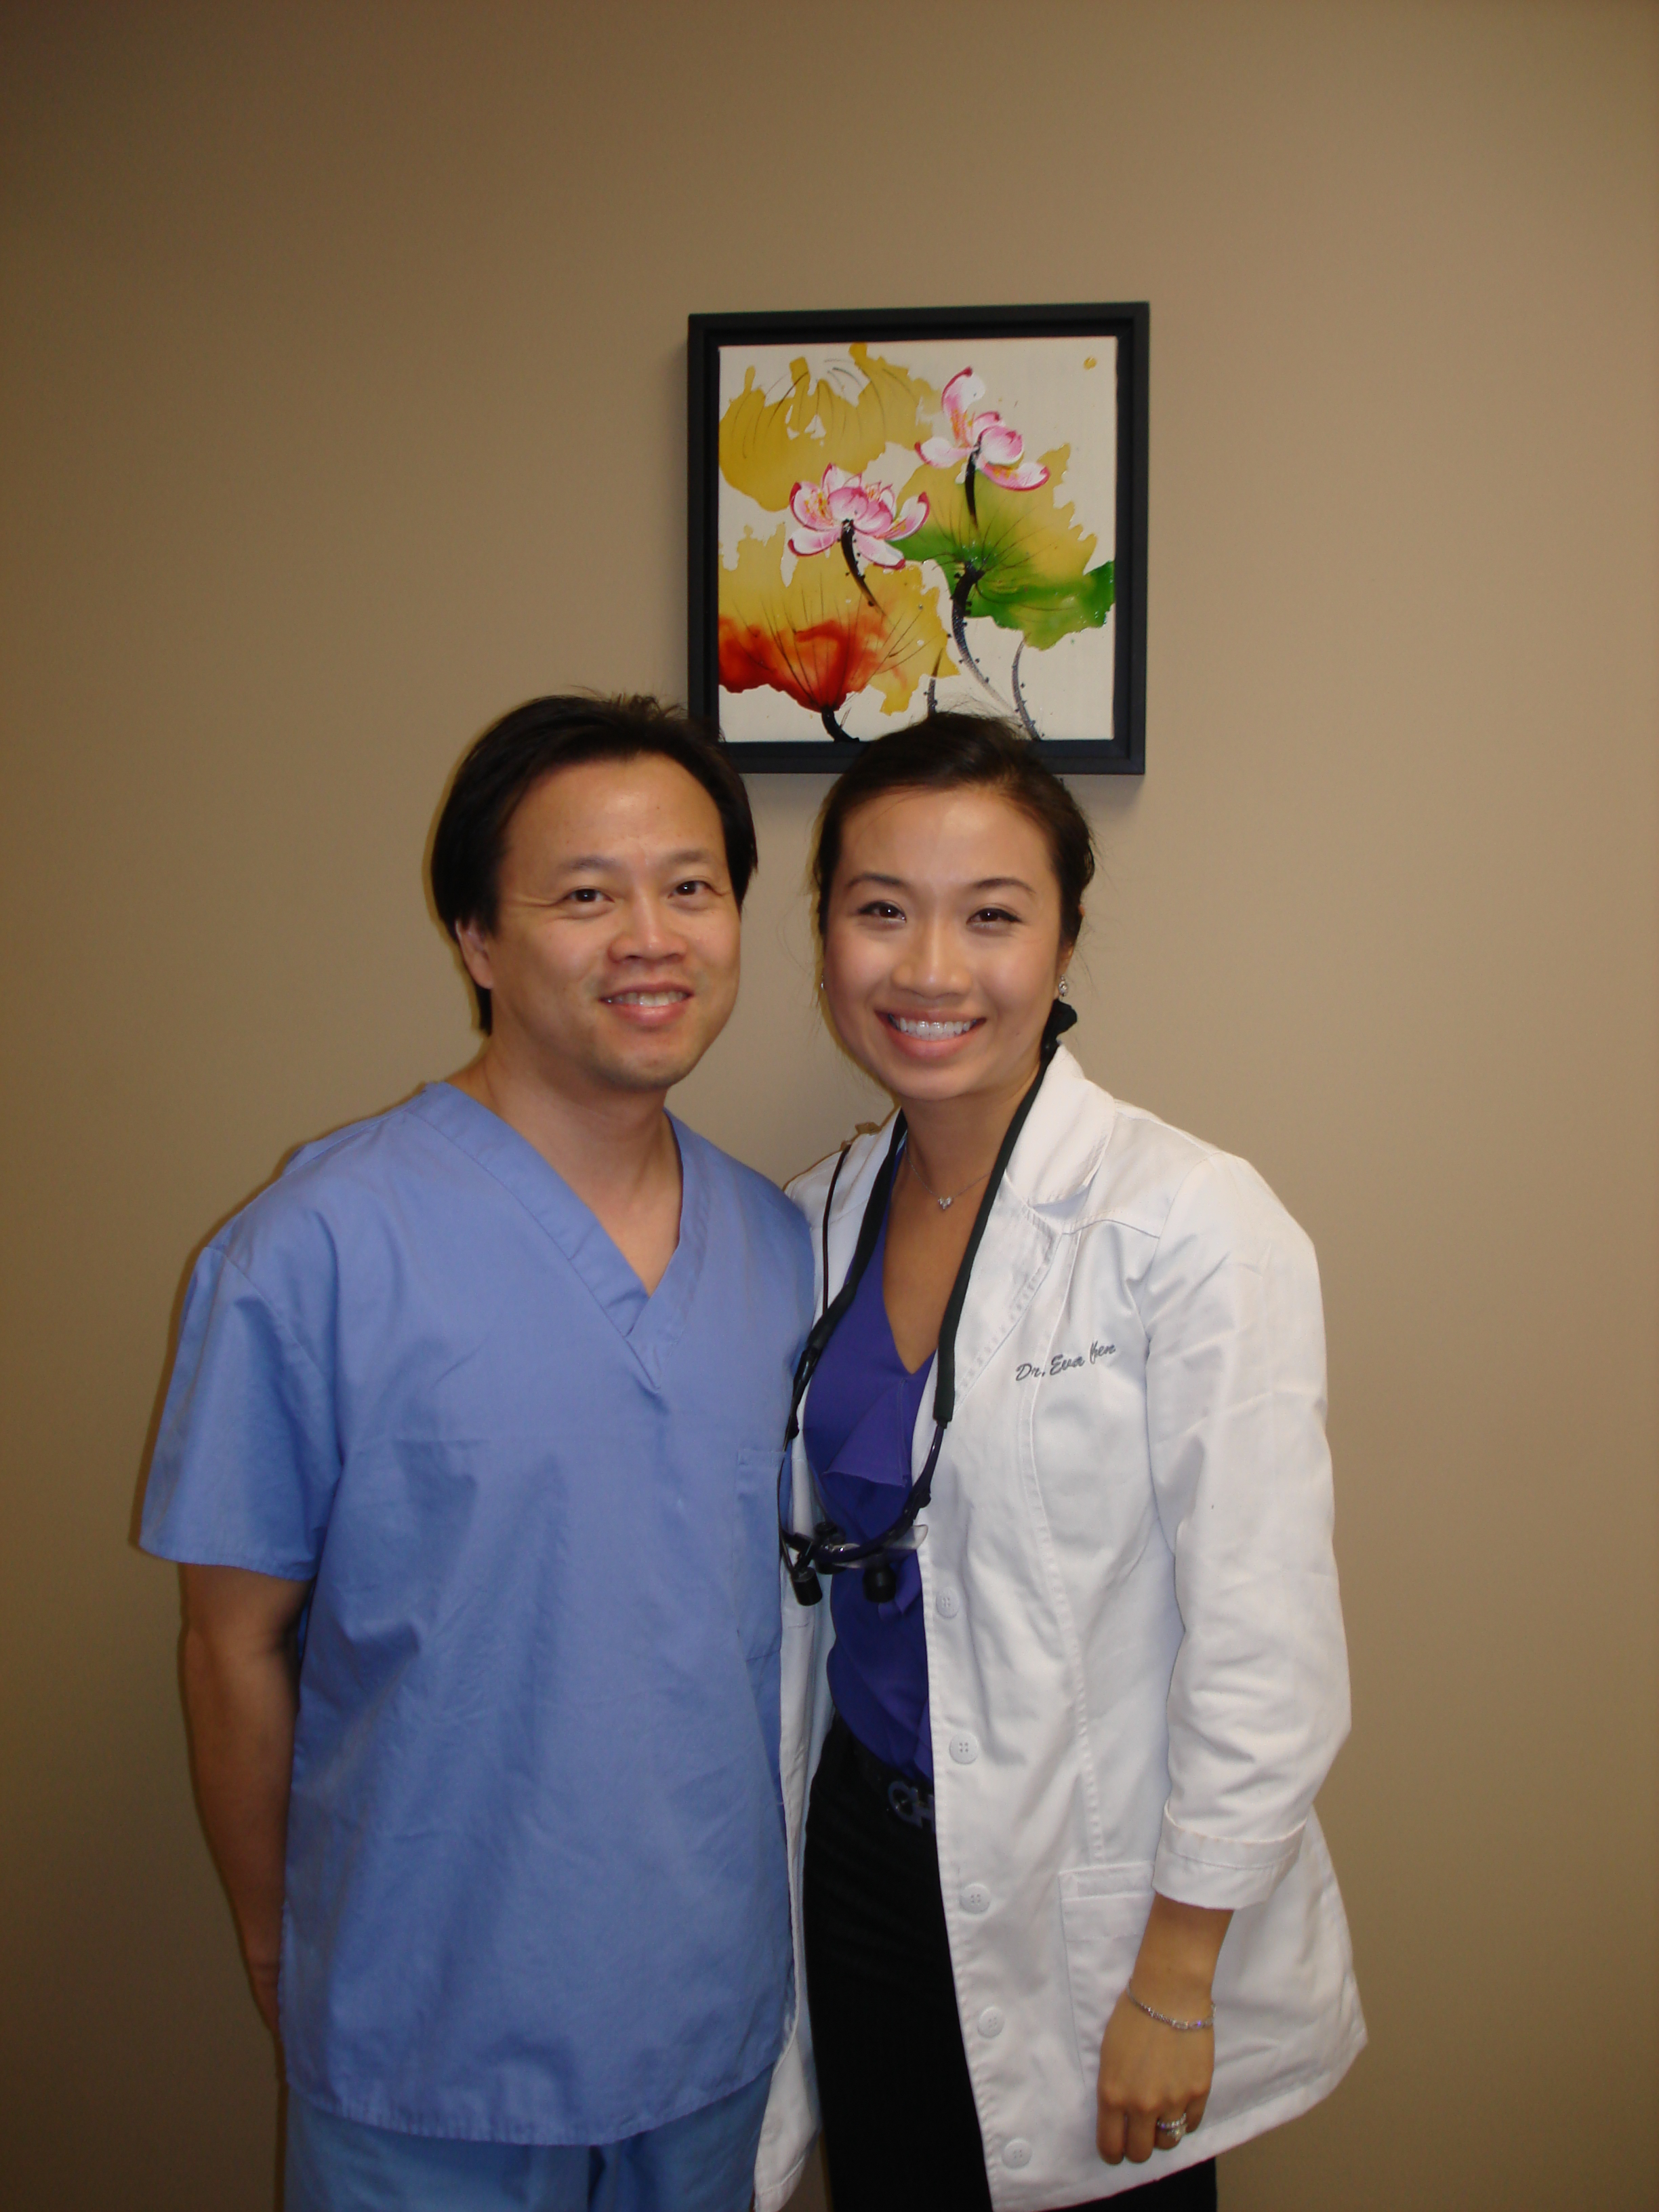 Dr. Lam and Dr. Chen